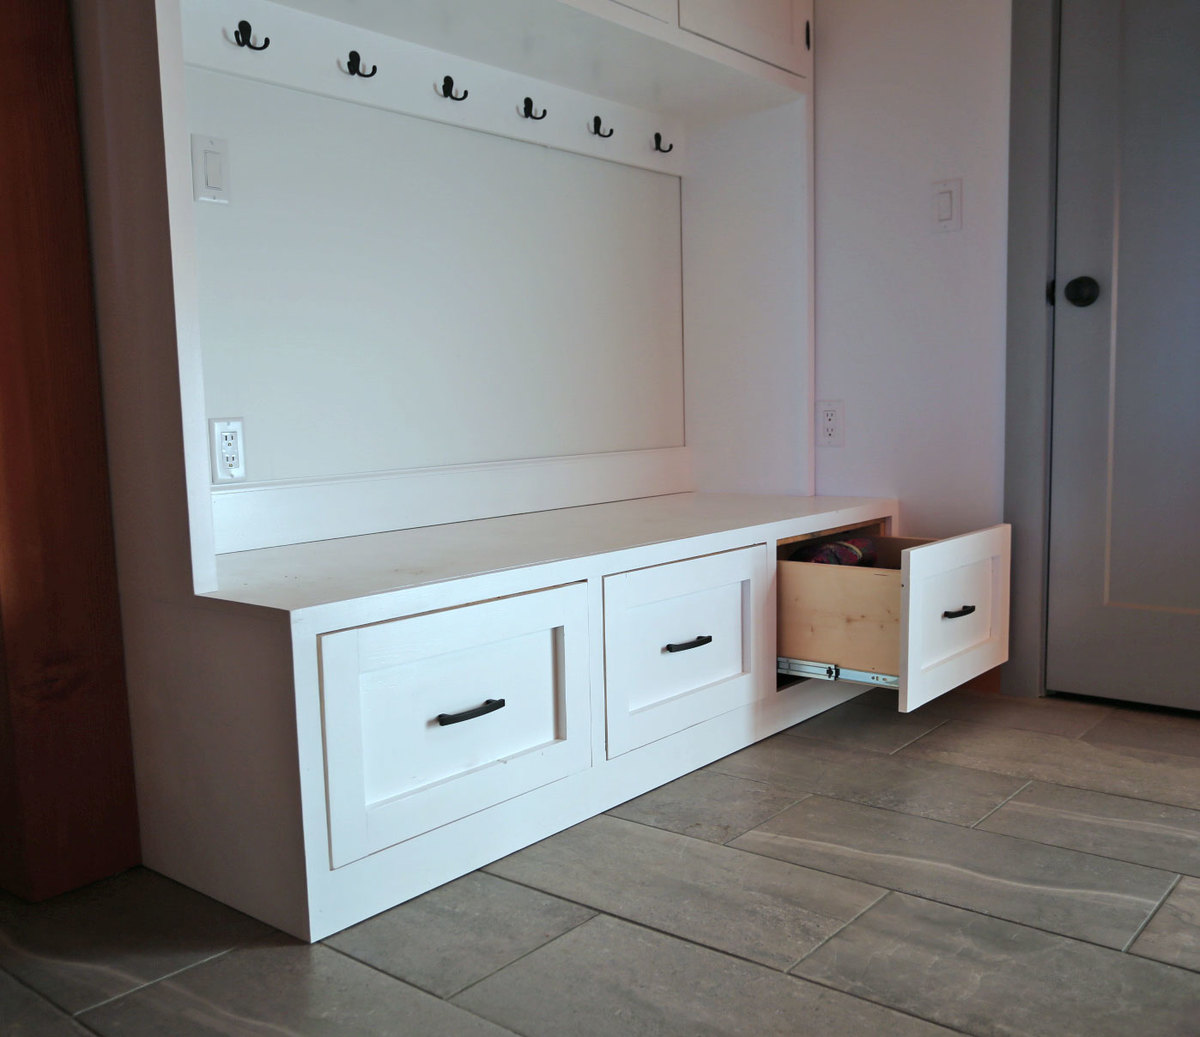 Maximize The Functionality And Storage In Your Mudroom With A New Bench Drawers This Easy To Build Drawer Will Add Ton Of Very